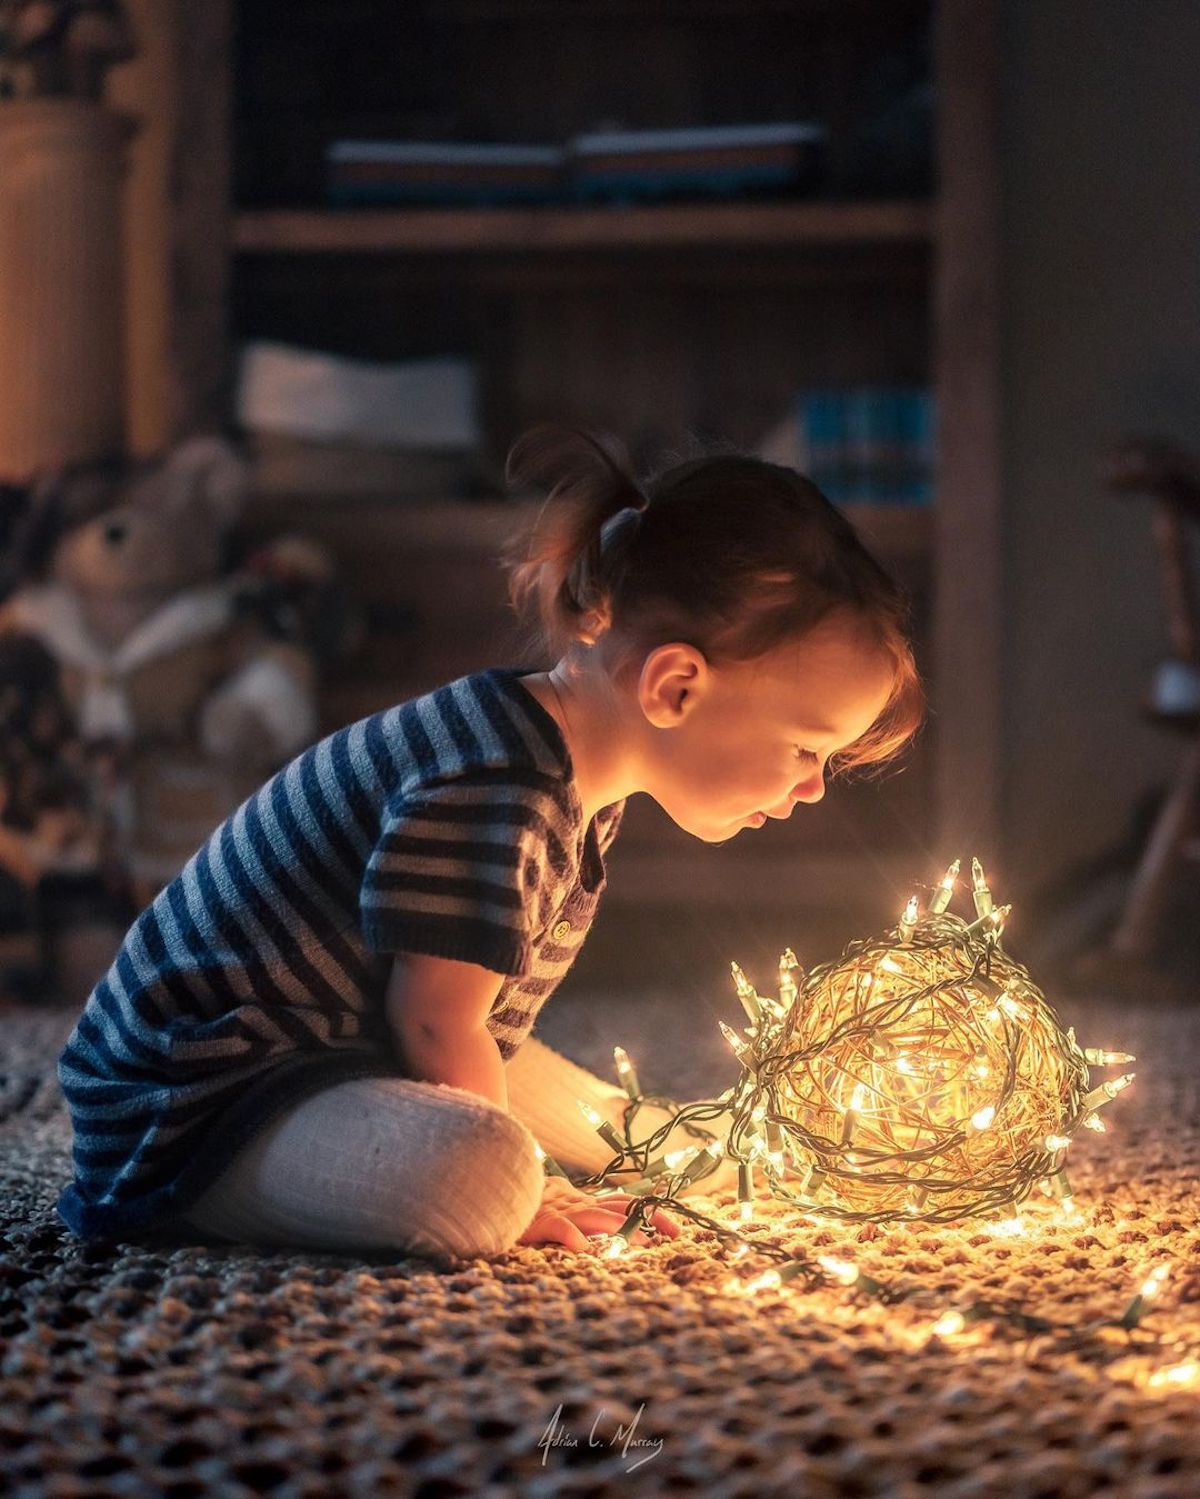 Girl Looking at Ball of Lights